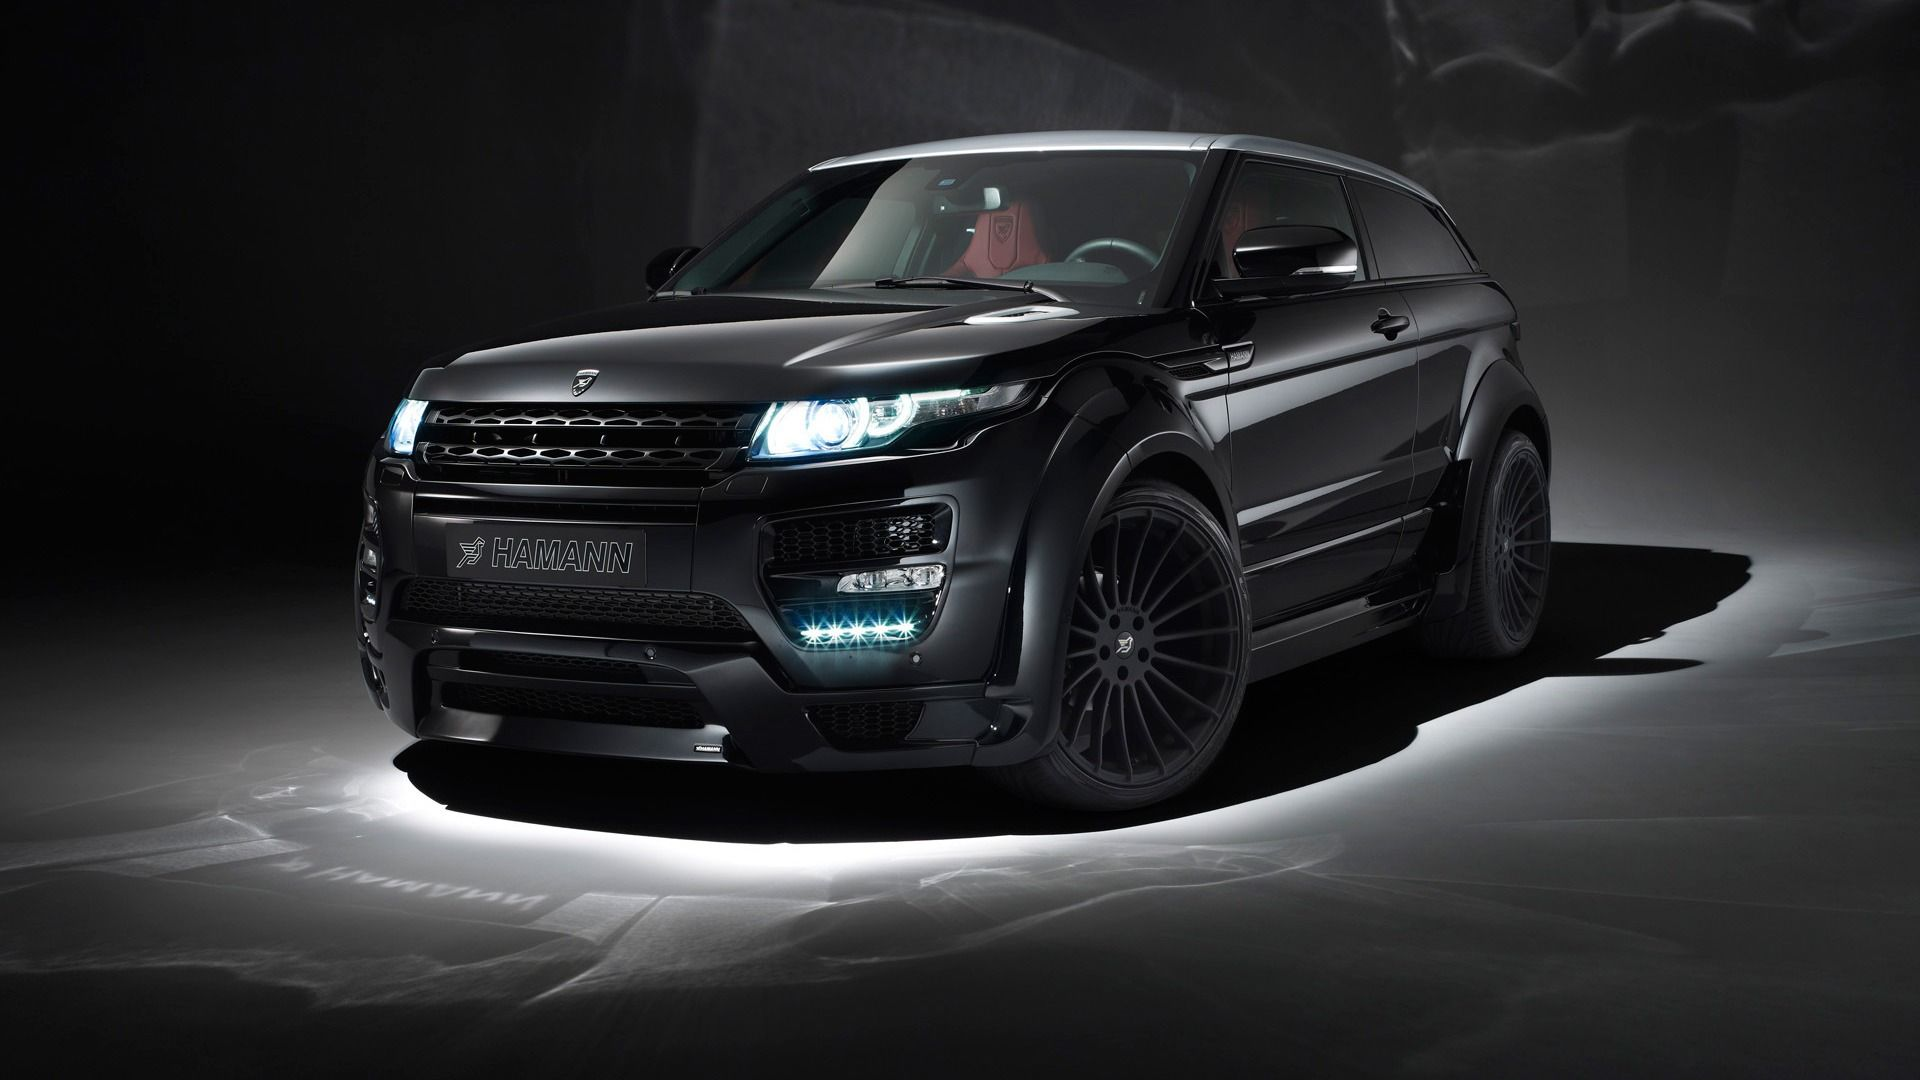 Land rover range rover evoque black pictures and information here you can find land rover range rover evoque photos and parameters